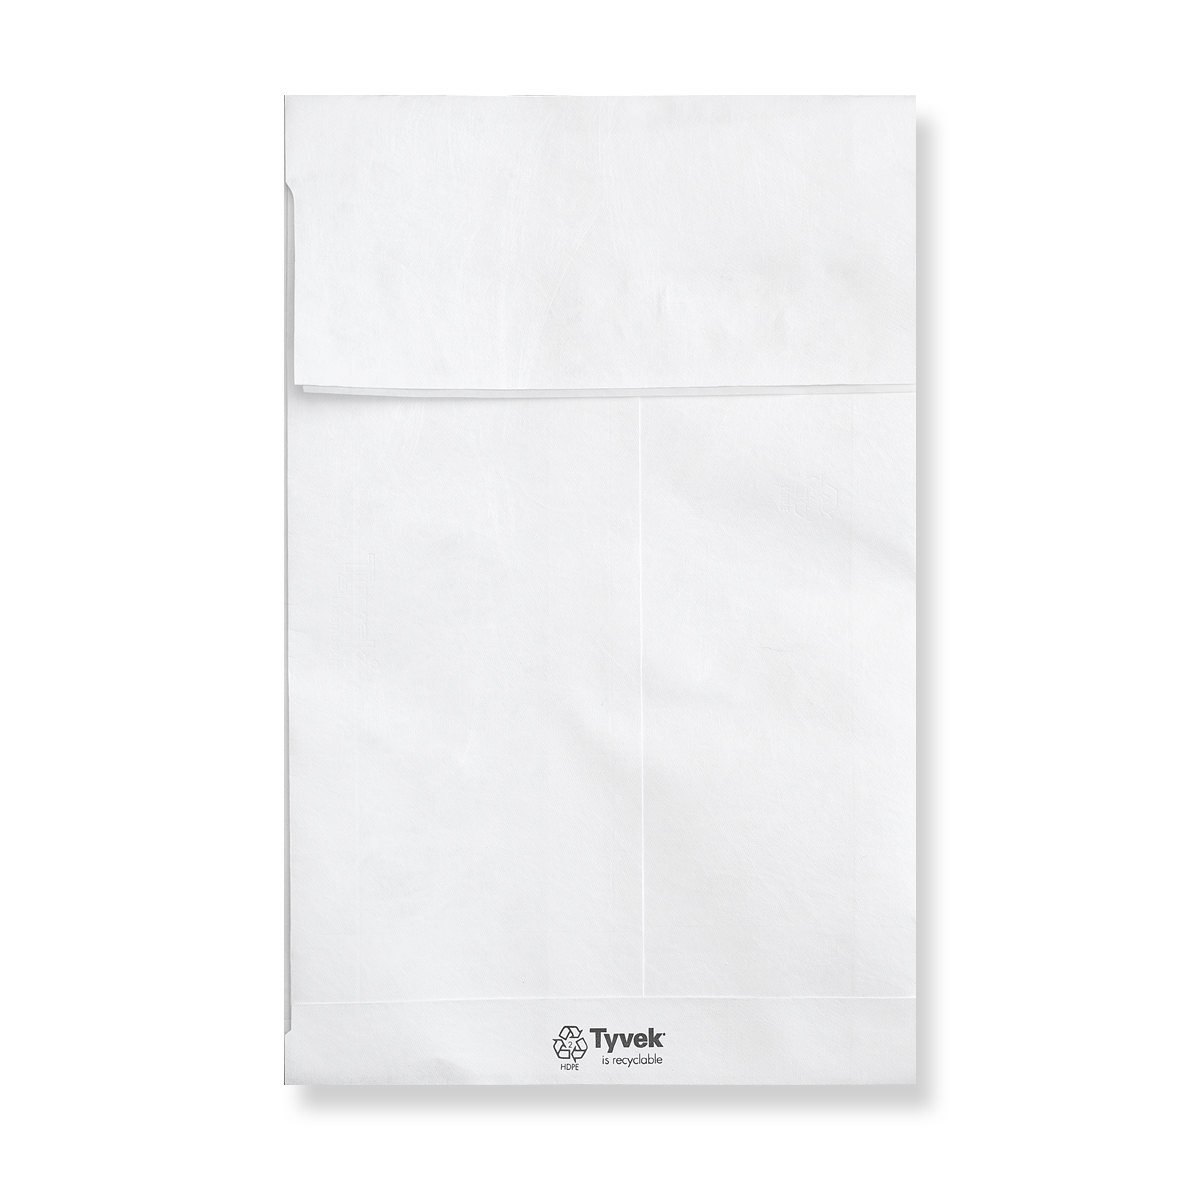 250 x 176mm WHITE TYVEK GUSSET ENVELOPES